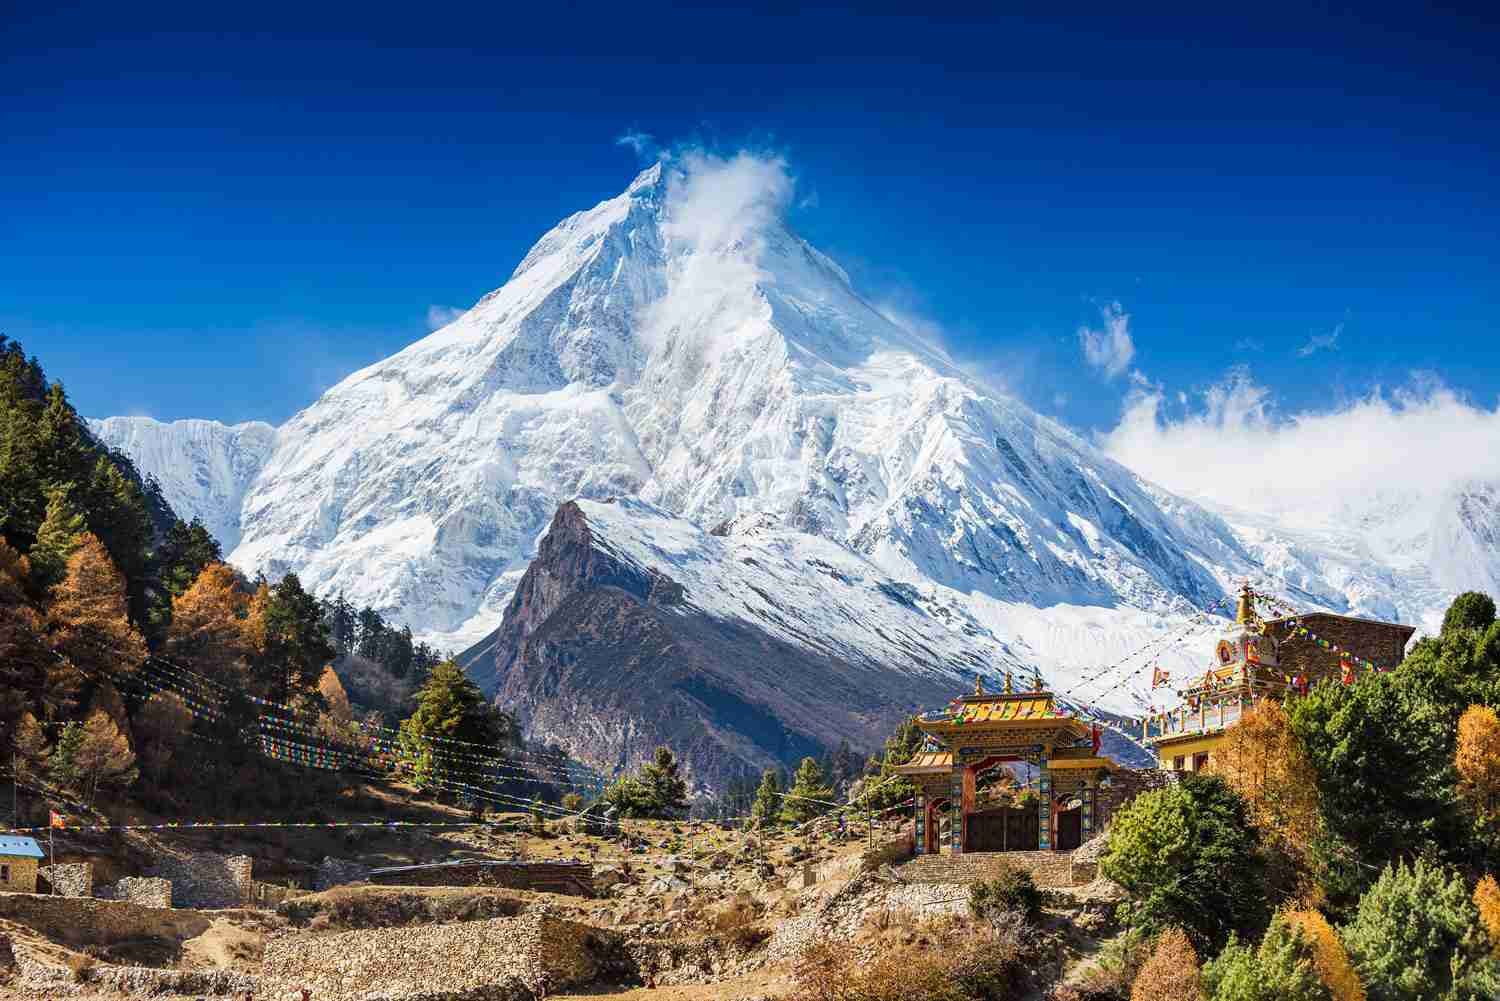 Nepal - on arrival visa country for indians